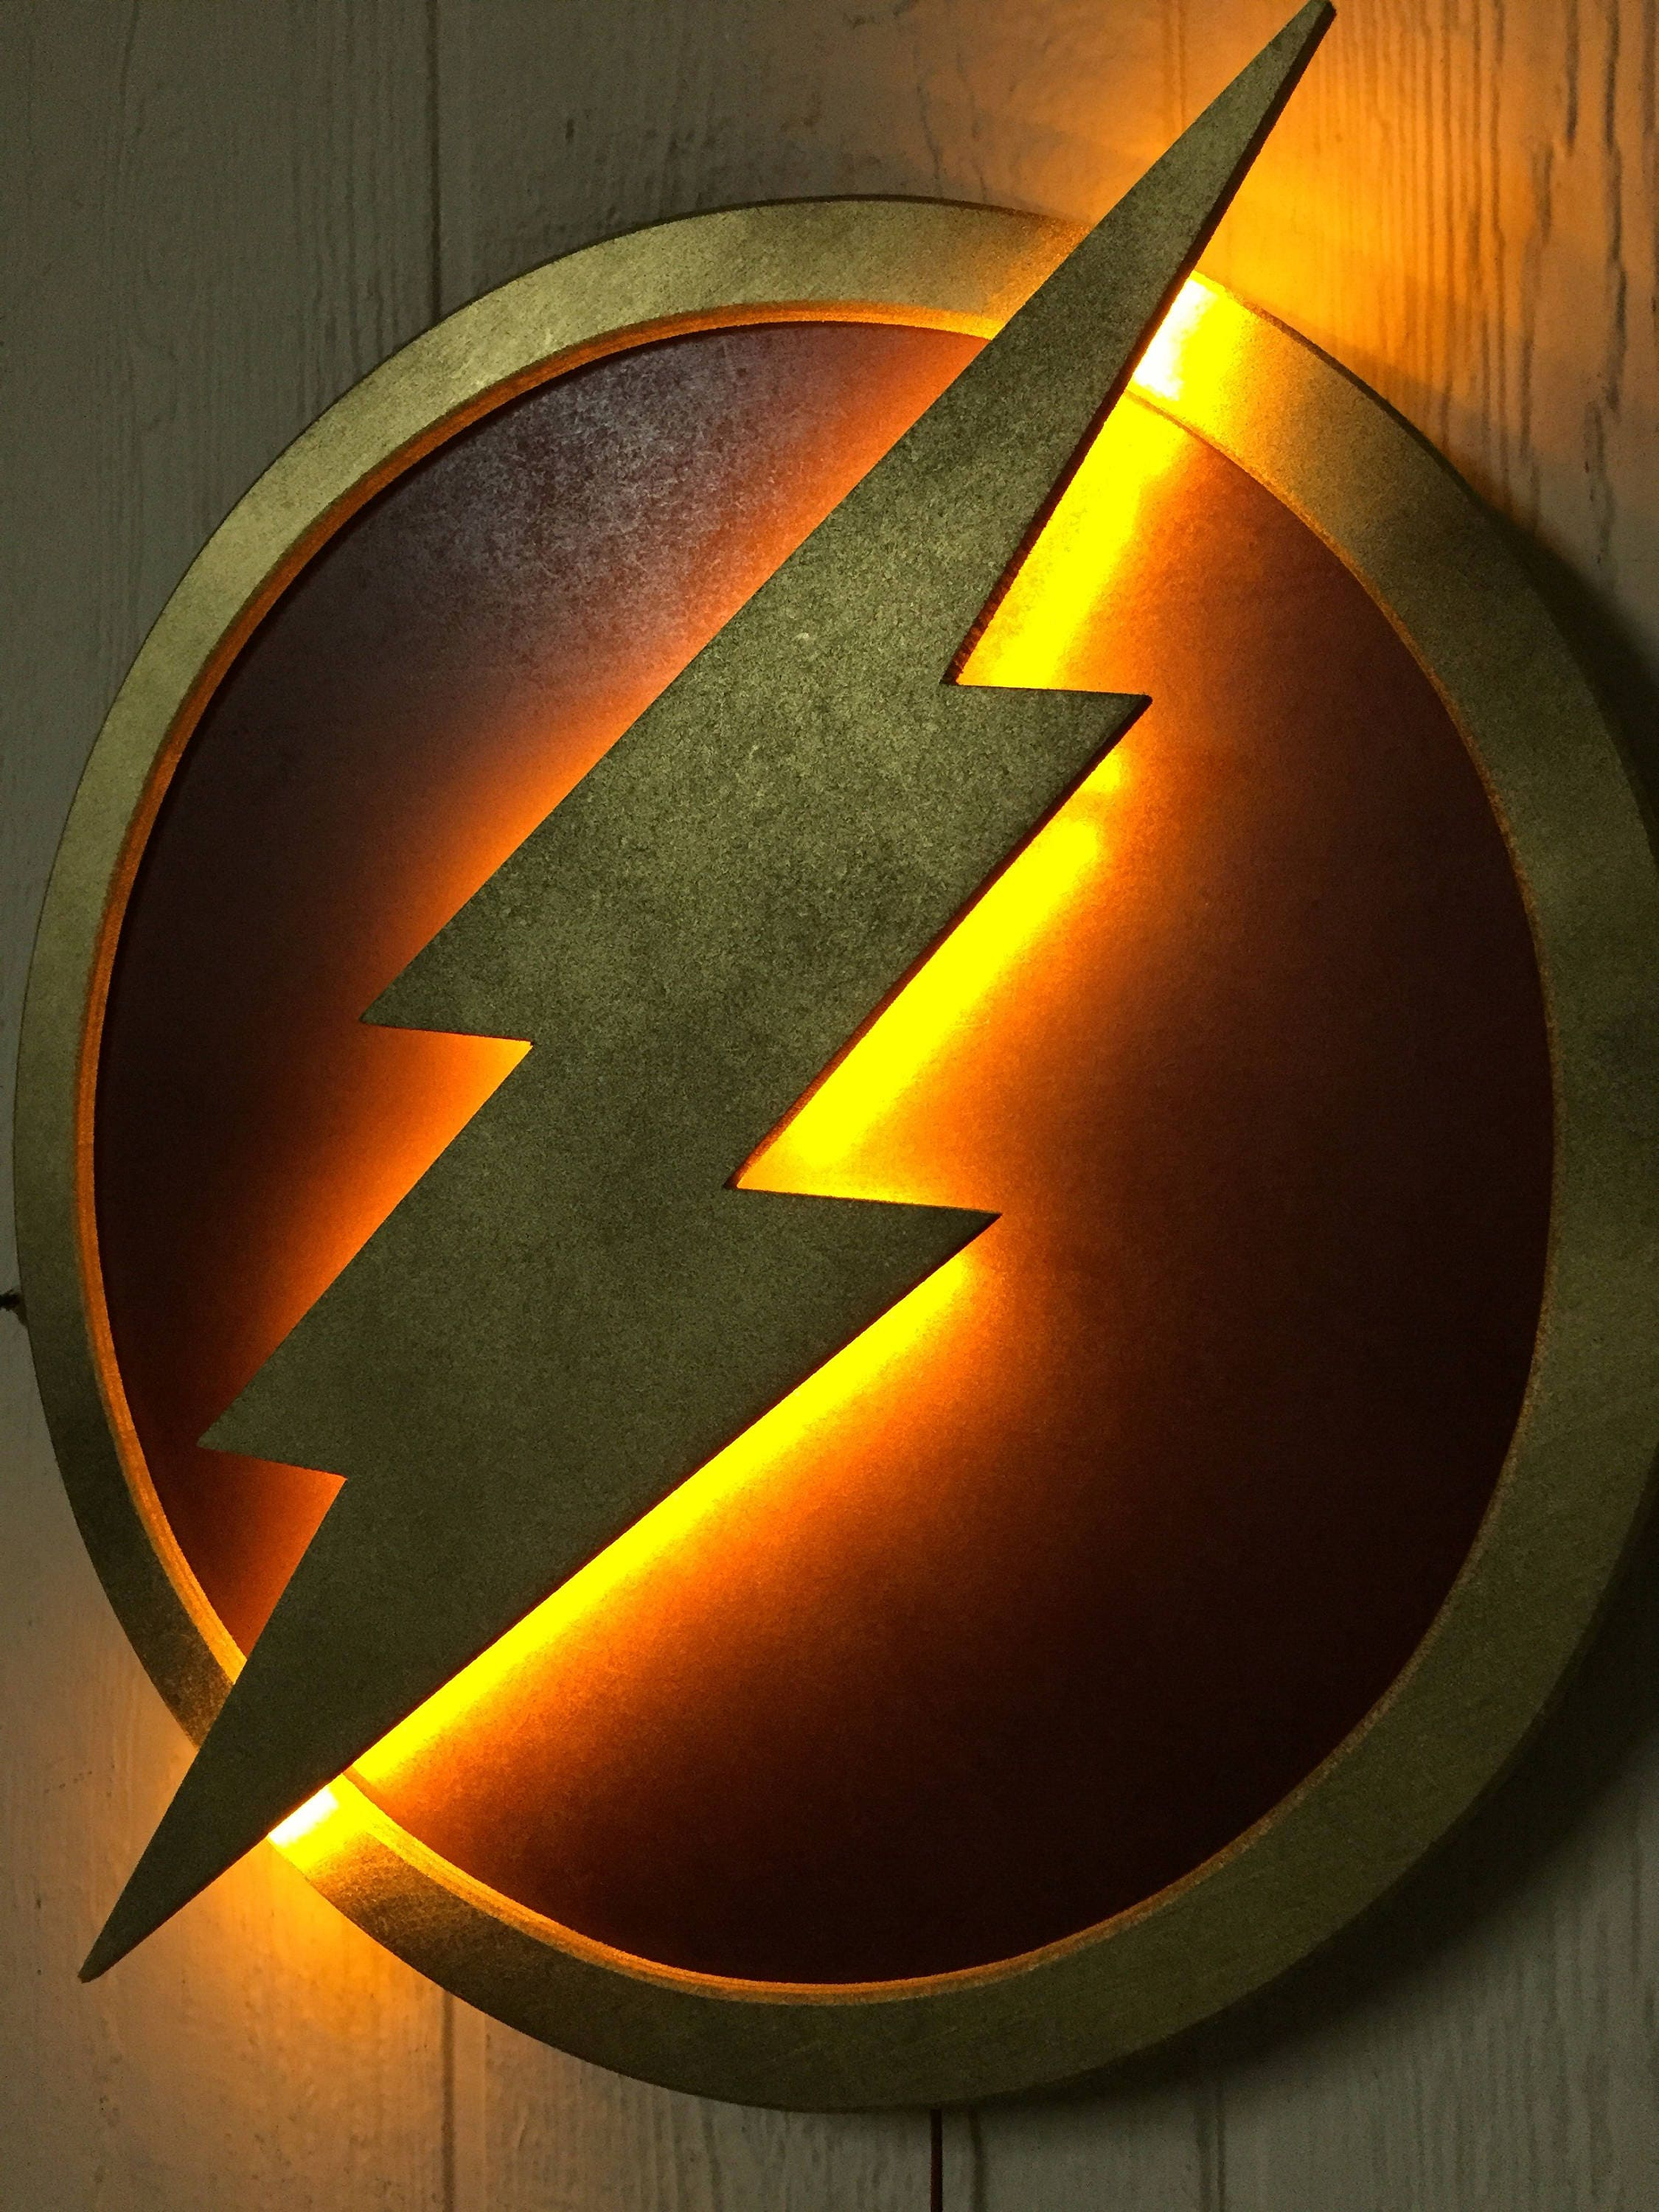 Plug In Wall Lamps For Bedroom Justice League The Flash Led Illuminated Superhero Logo Night